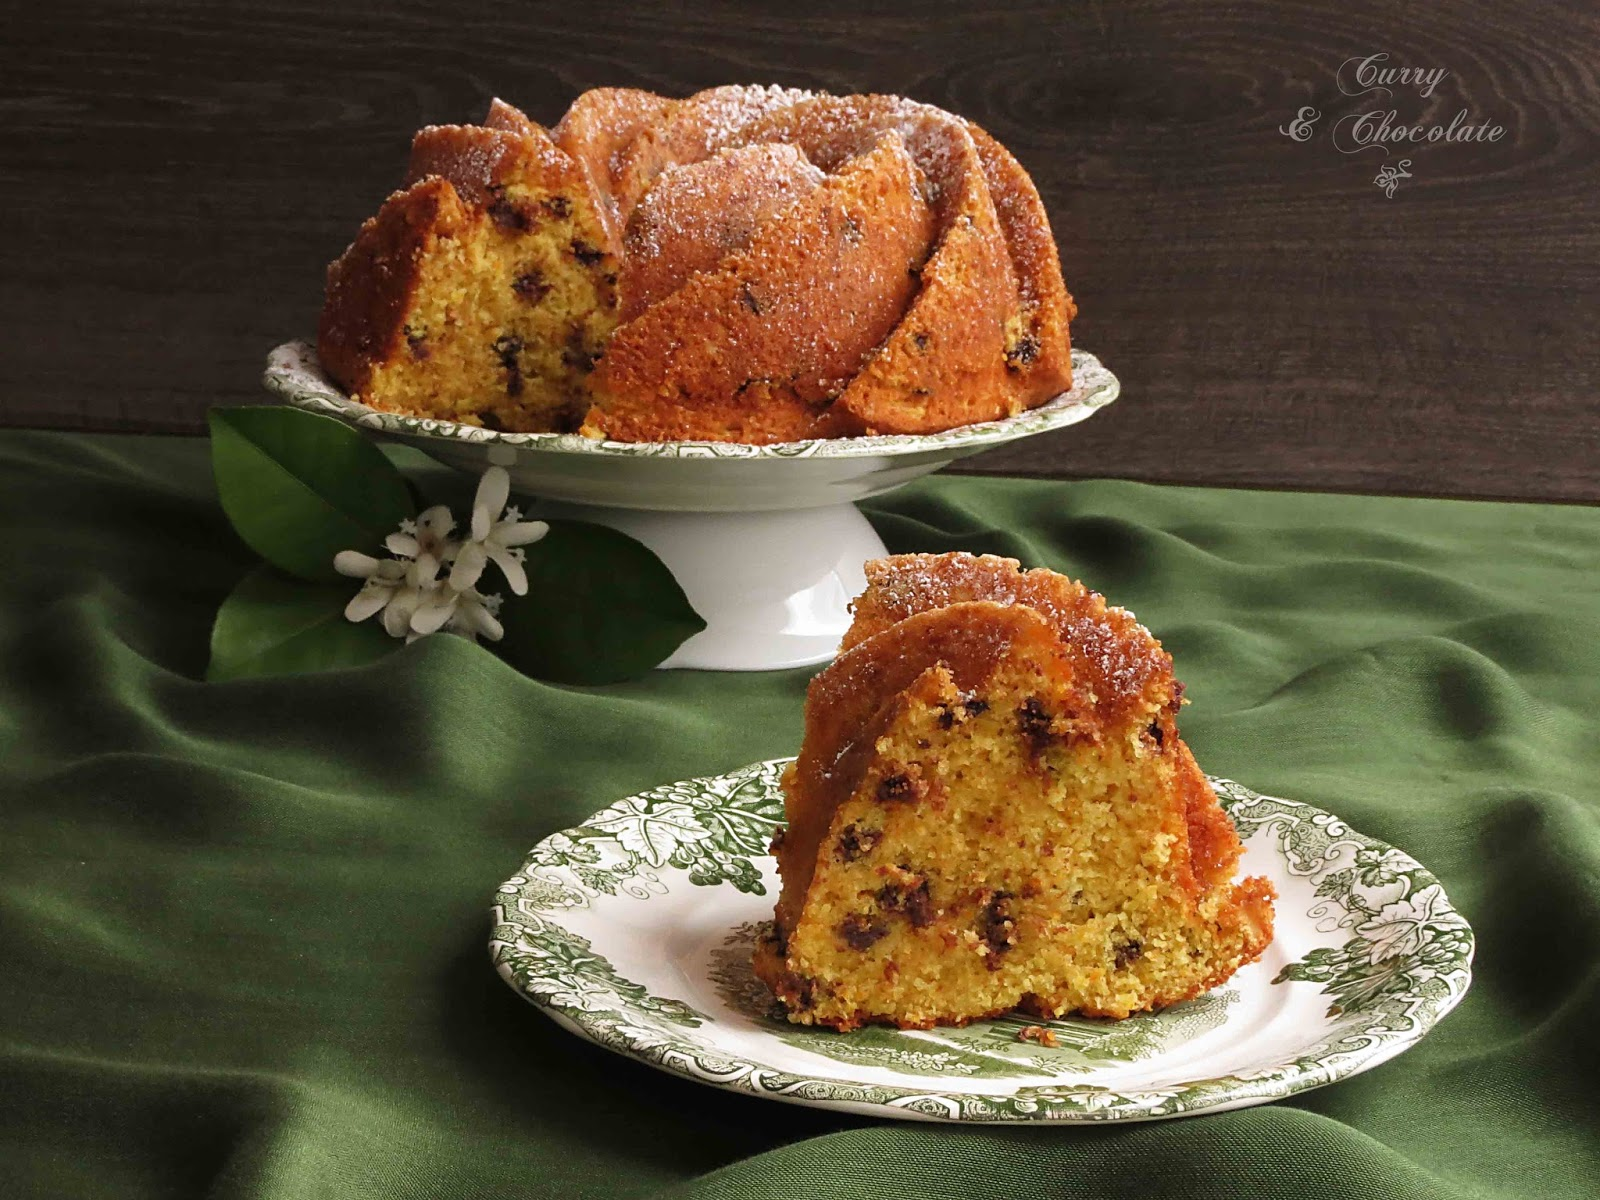 Bizcocho de mandarinas frescas y pepitas de chocolate XL - Fresh Tangerine Budnt Cake with chocolate chips